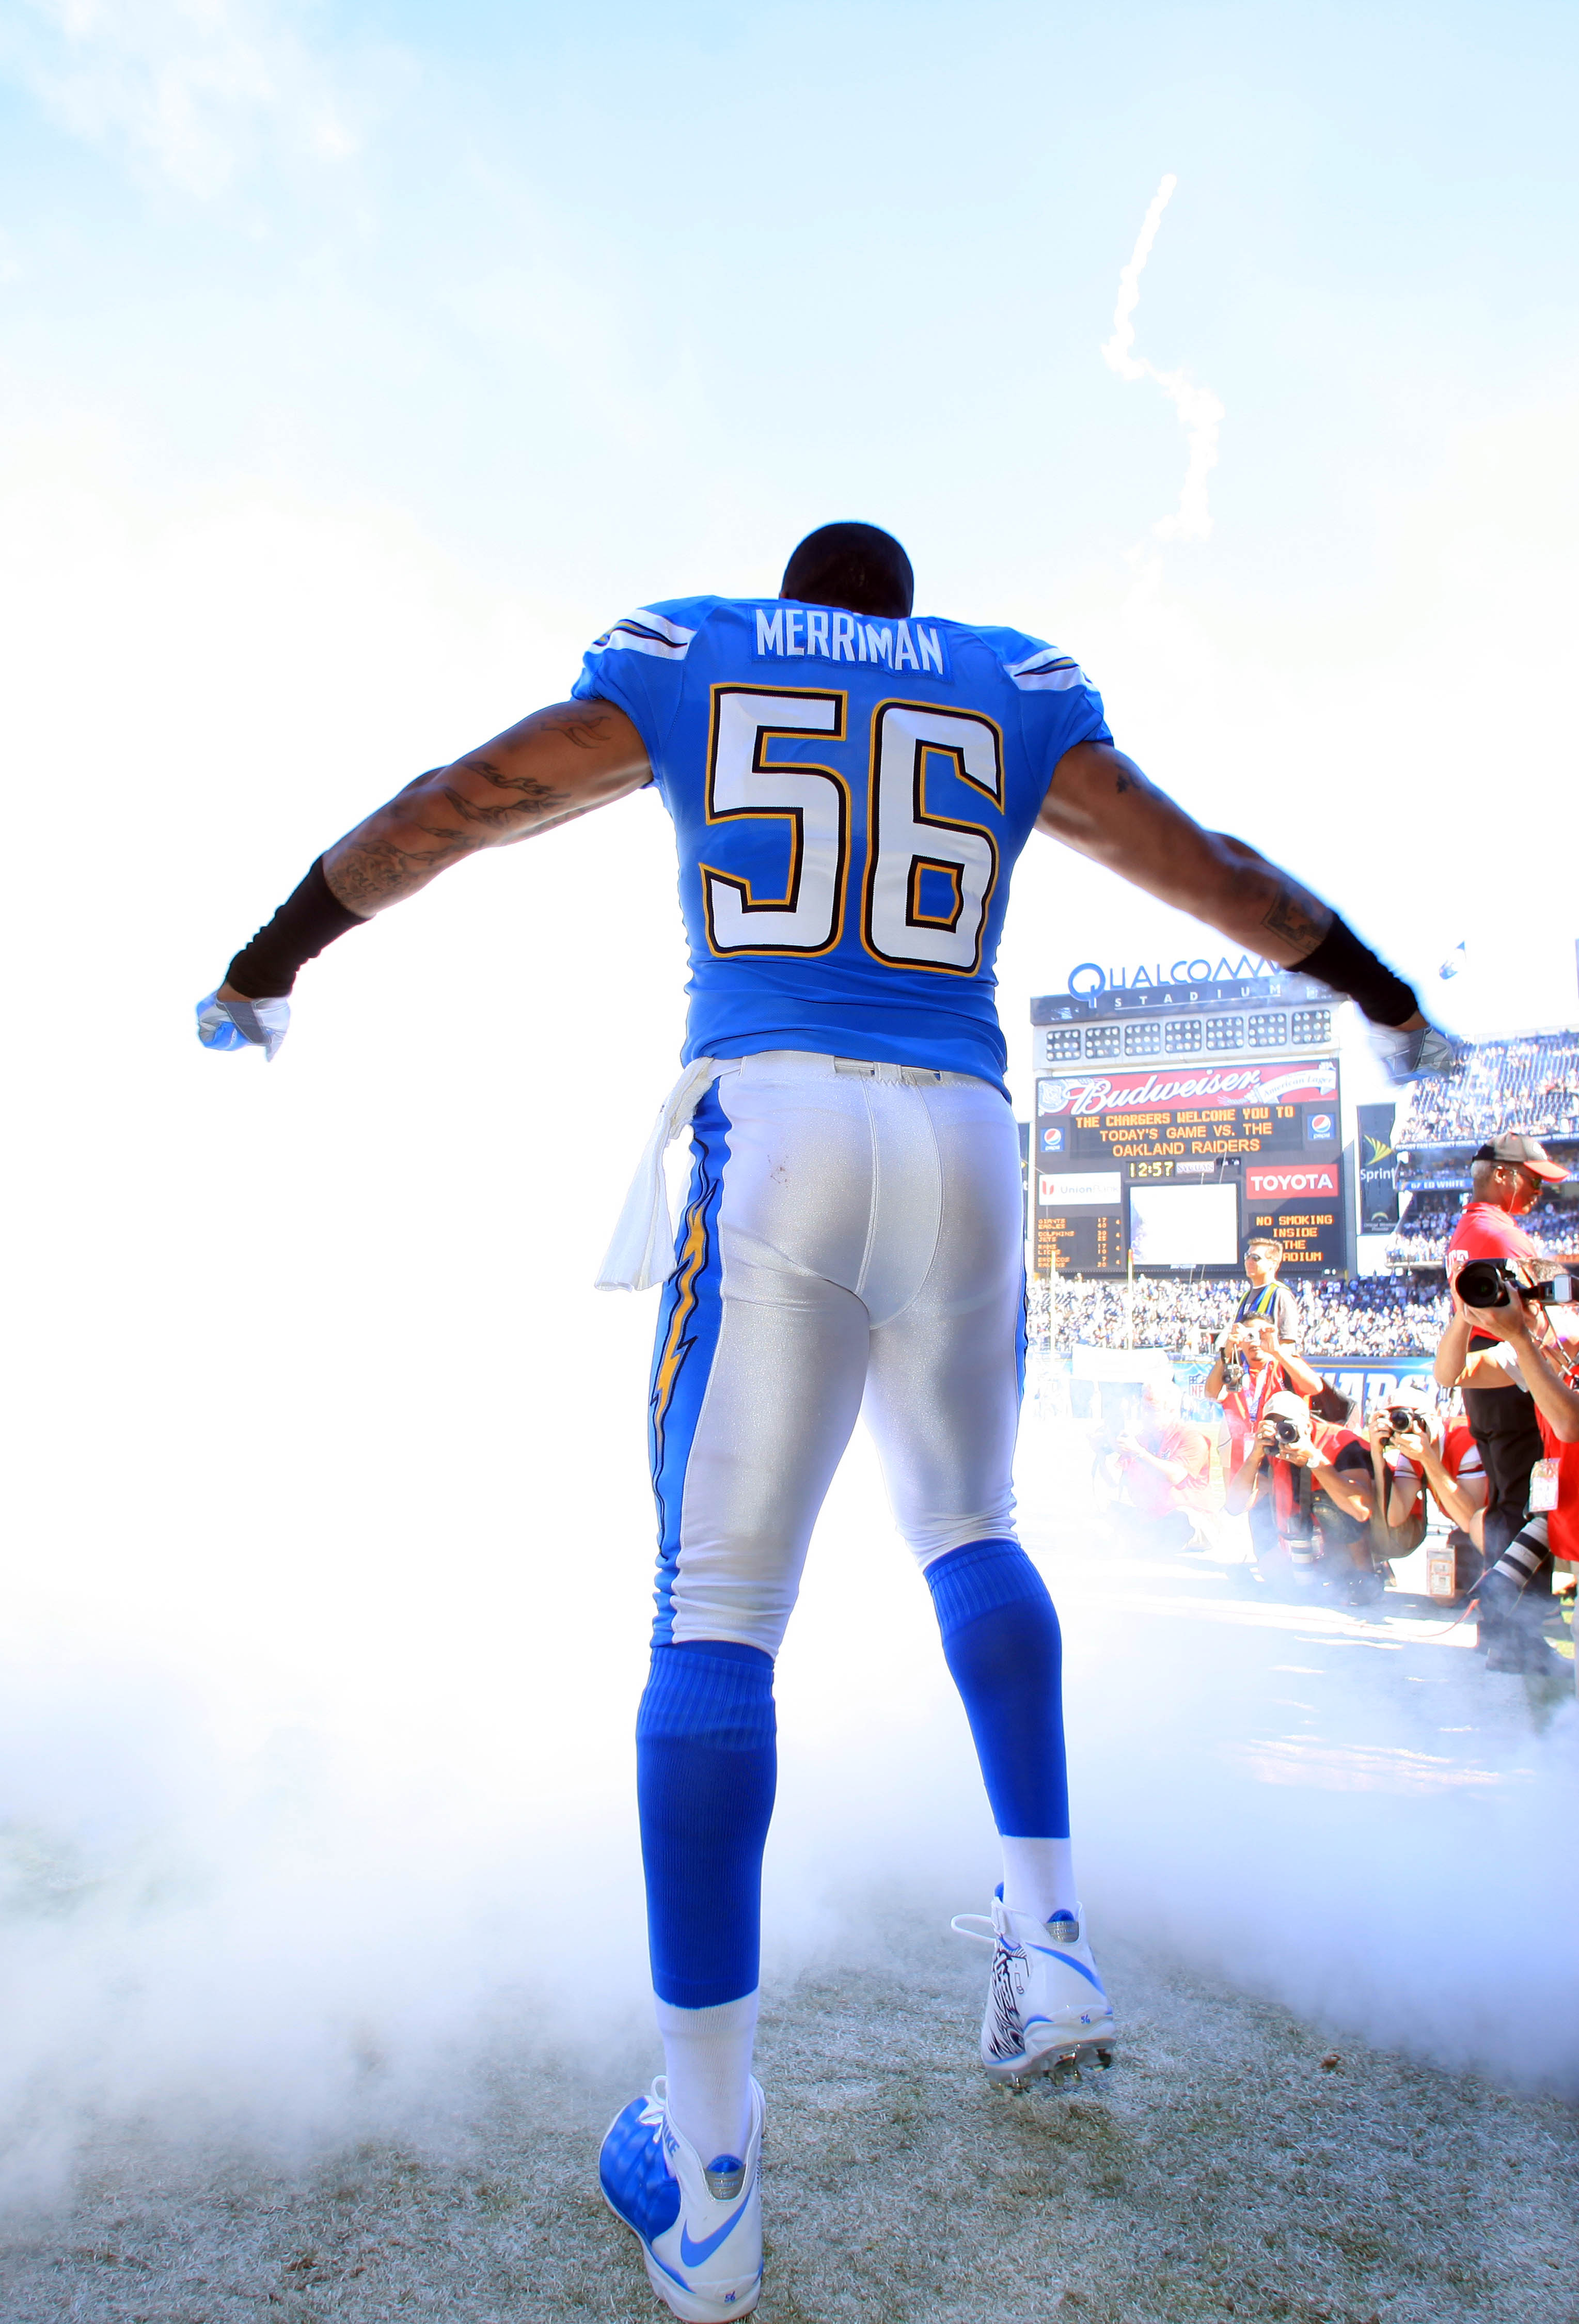 SAN DIEGO, CA - NOVEMBER 1:  Shawne Merriman #56 of the San Diego Chargers enters the field before the game against the Oakland Raiders on November 1, 2009 at Qualcomm Stadium in San Diego, California. (Photo by Donald Miralle/Getty Images)